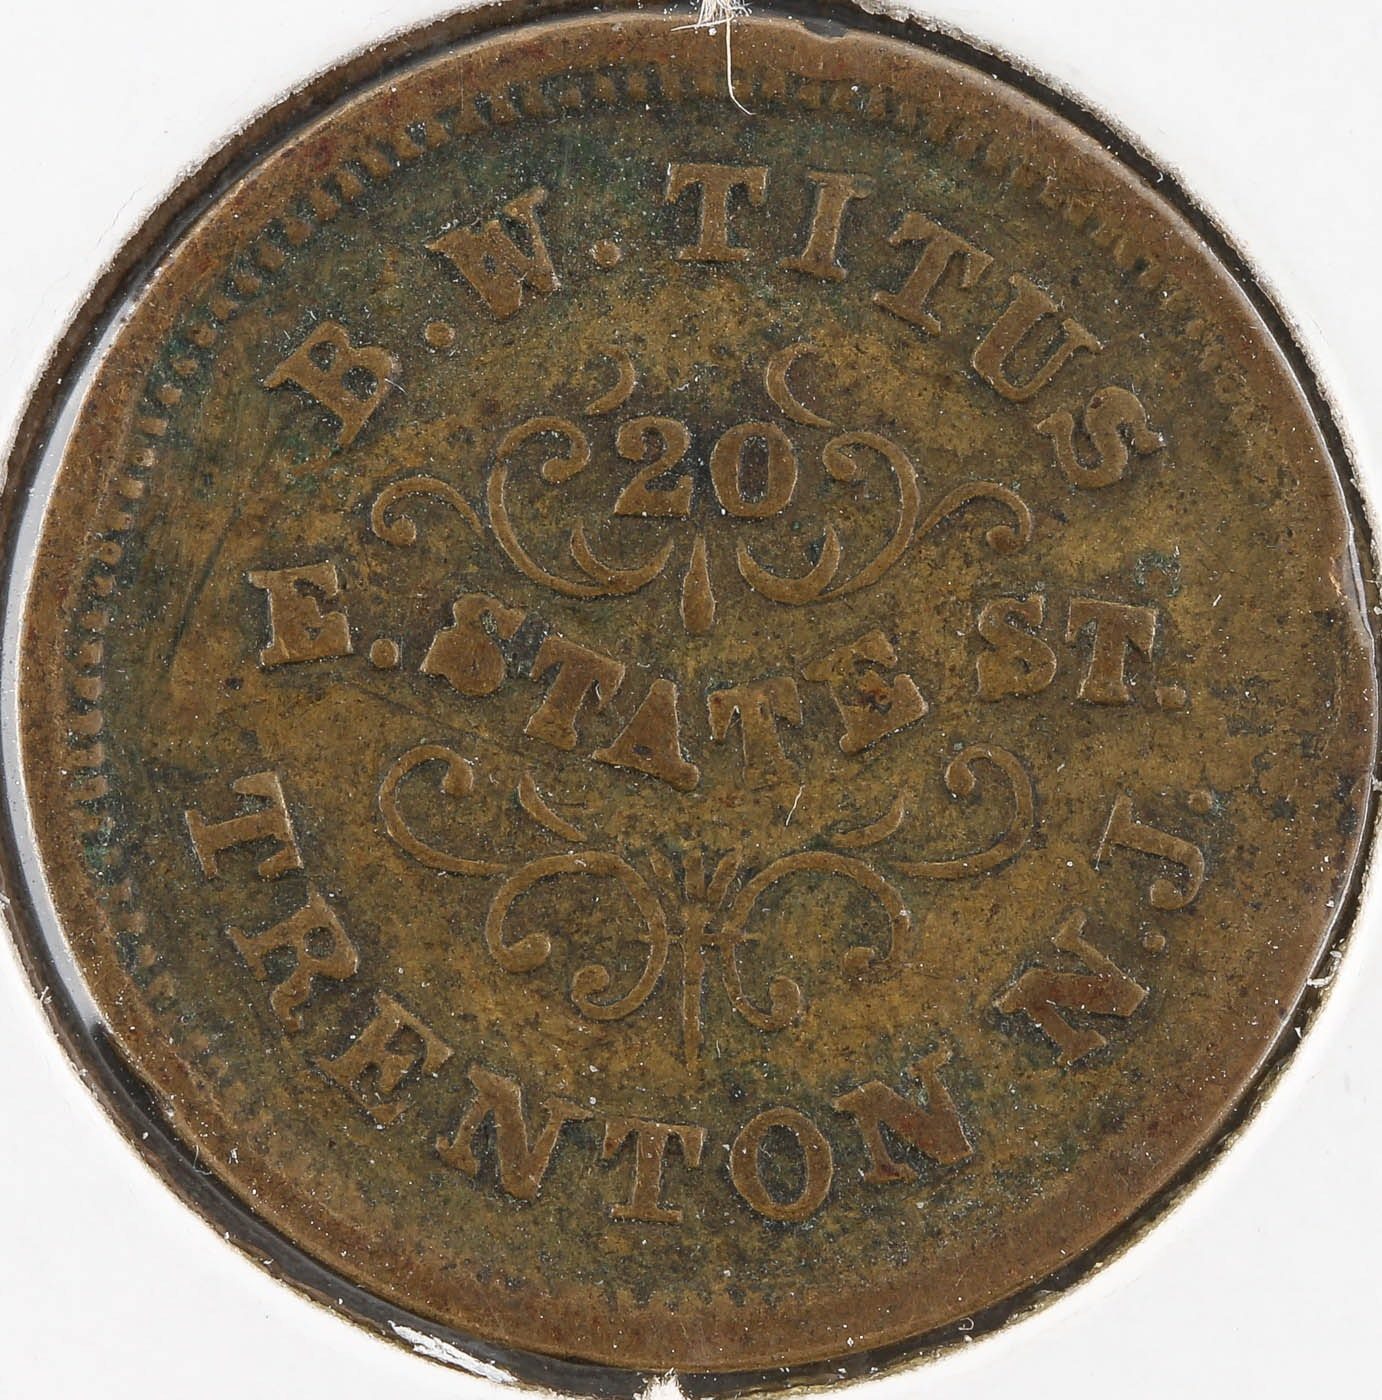 Civil War Era DRY GOODS Token